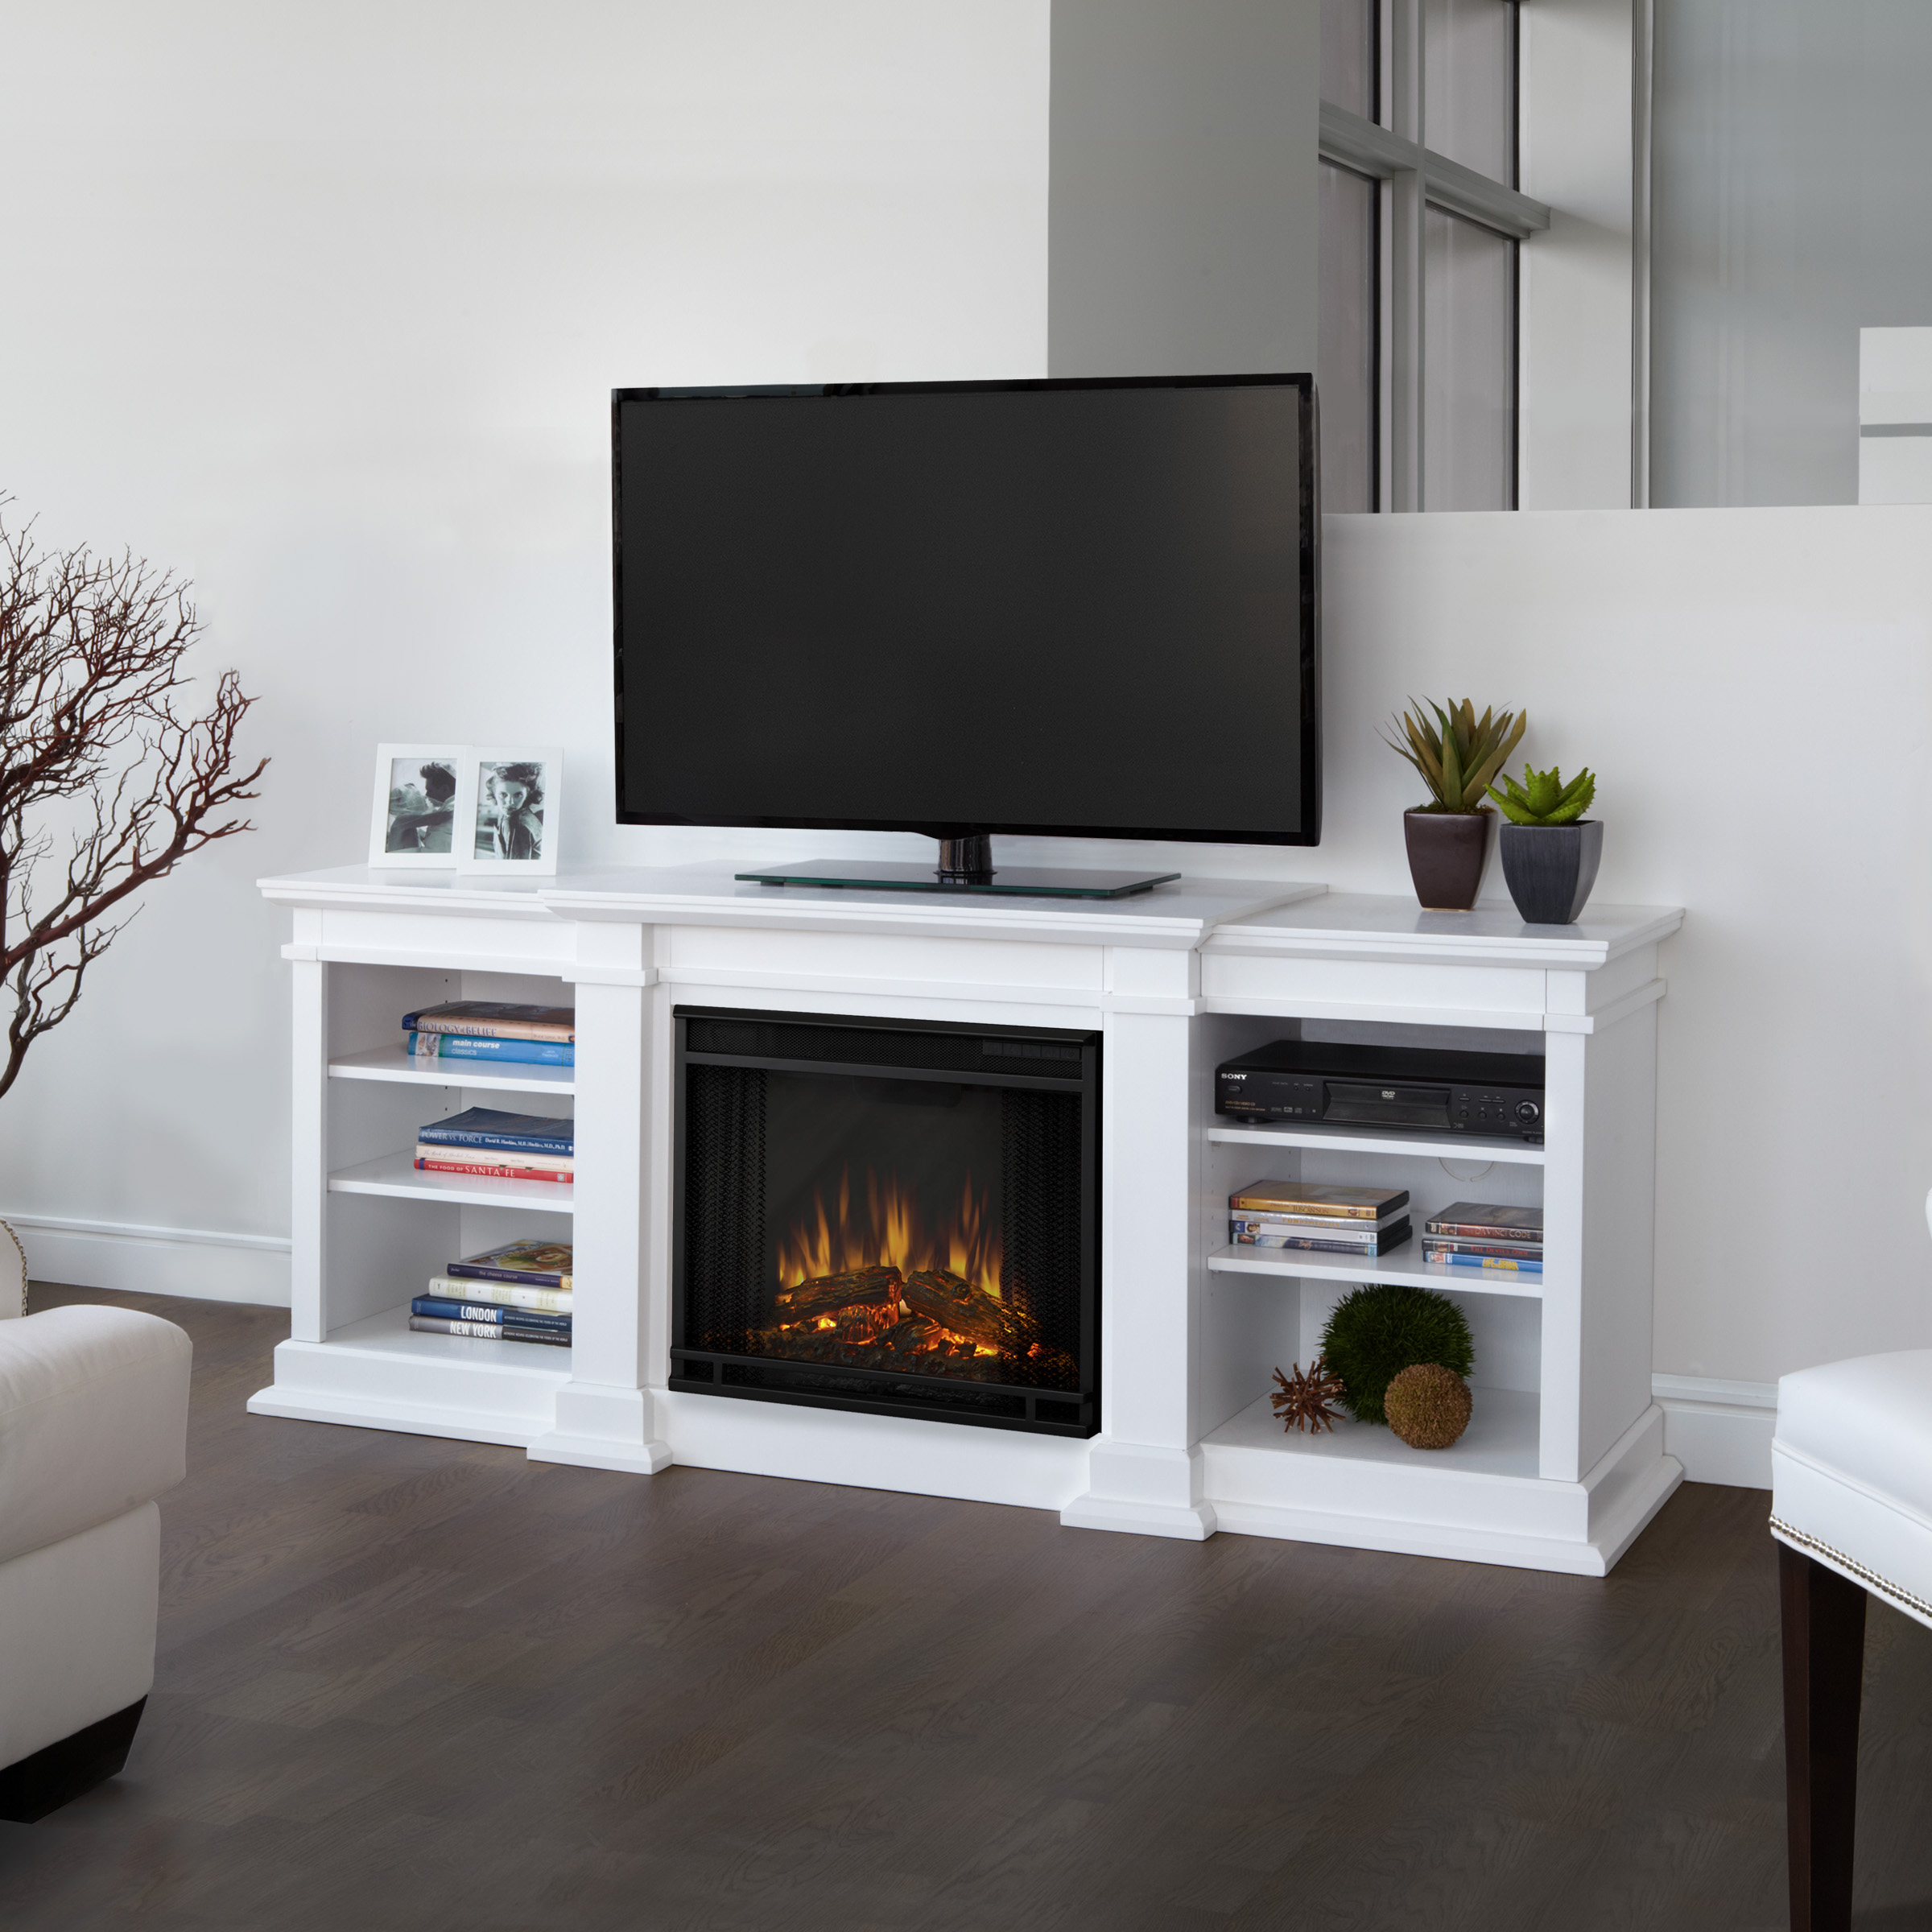 Witching Insert Fireplaces Value City Furniture Along With Merrick Pertaining To Willa 80 Inch Tv Stands (Photo 26 of 30)